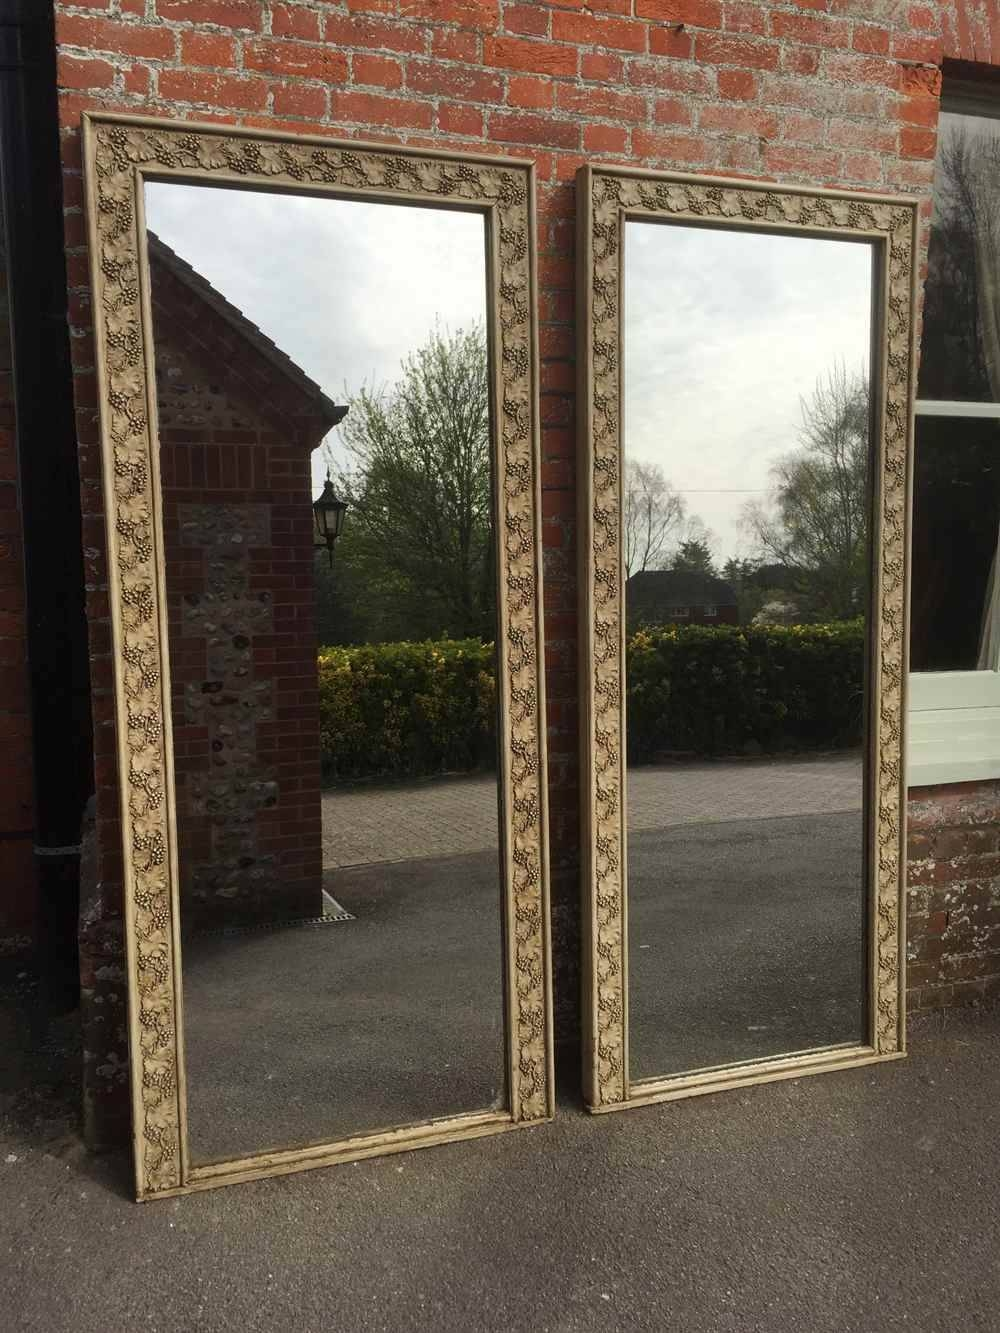 An Absolutely Stunning Pair Of Rare Large Antique 19Th Century Regarding Antique Large Mirrors (View 9 of 25)